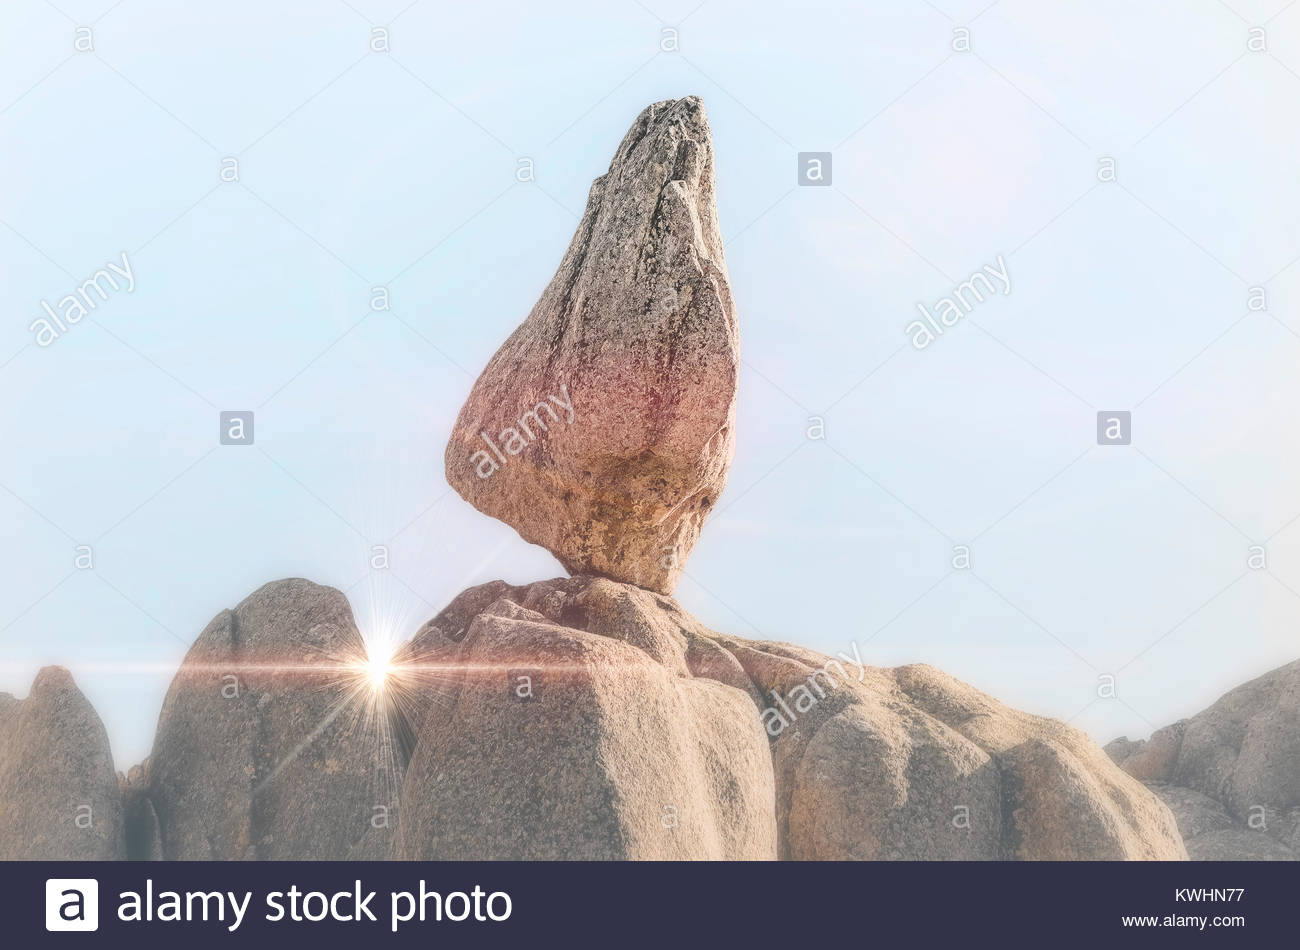 Fog and sunlight scenery at the same time. Strange granitic rock with triangular shape, like a finger pointing to Stock Photo